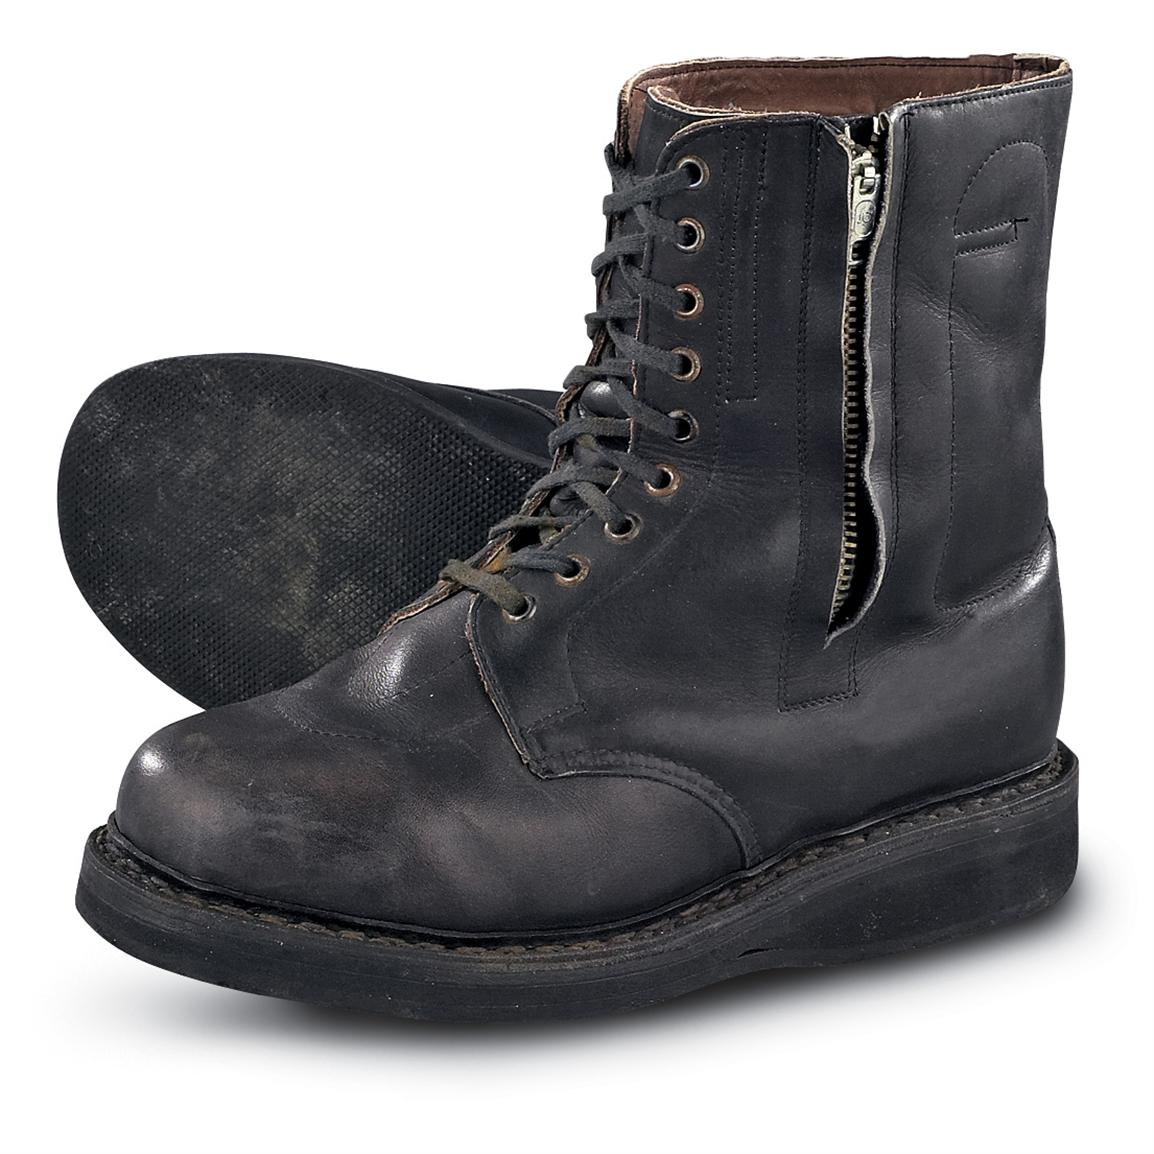 Used Mil.-issue East German Insulated Pilot Boots